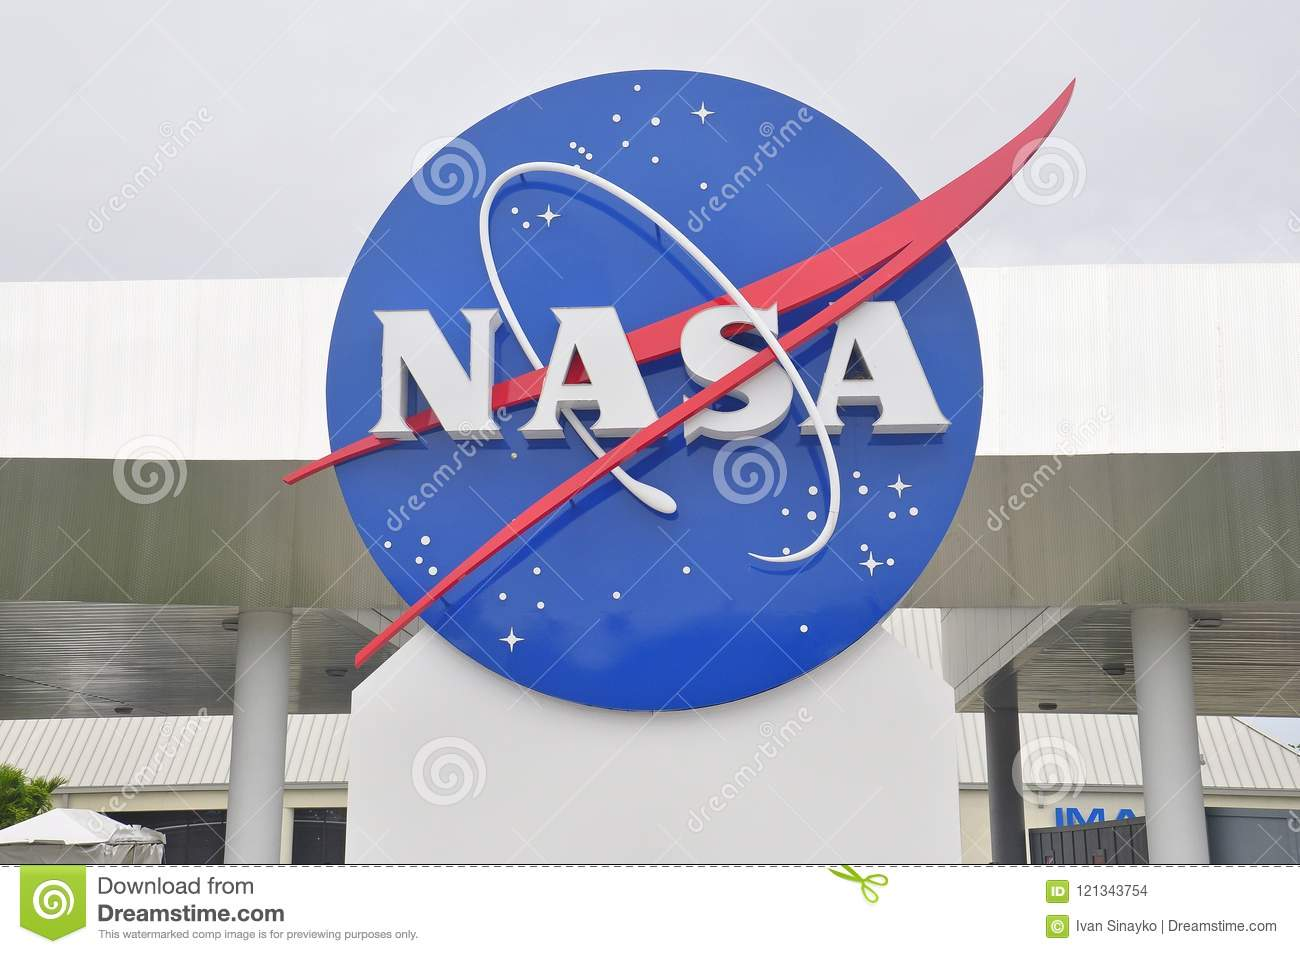 NASA Space Center in Florida